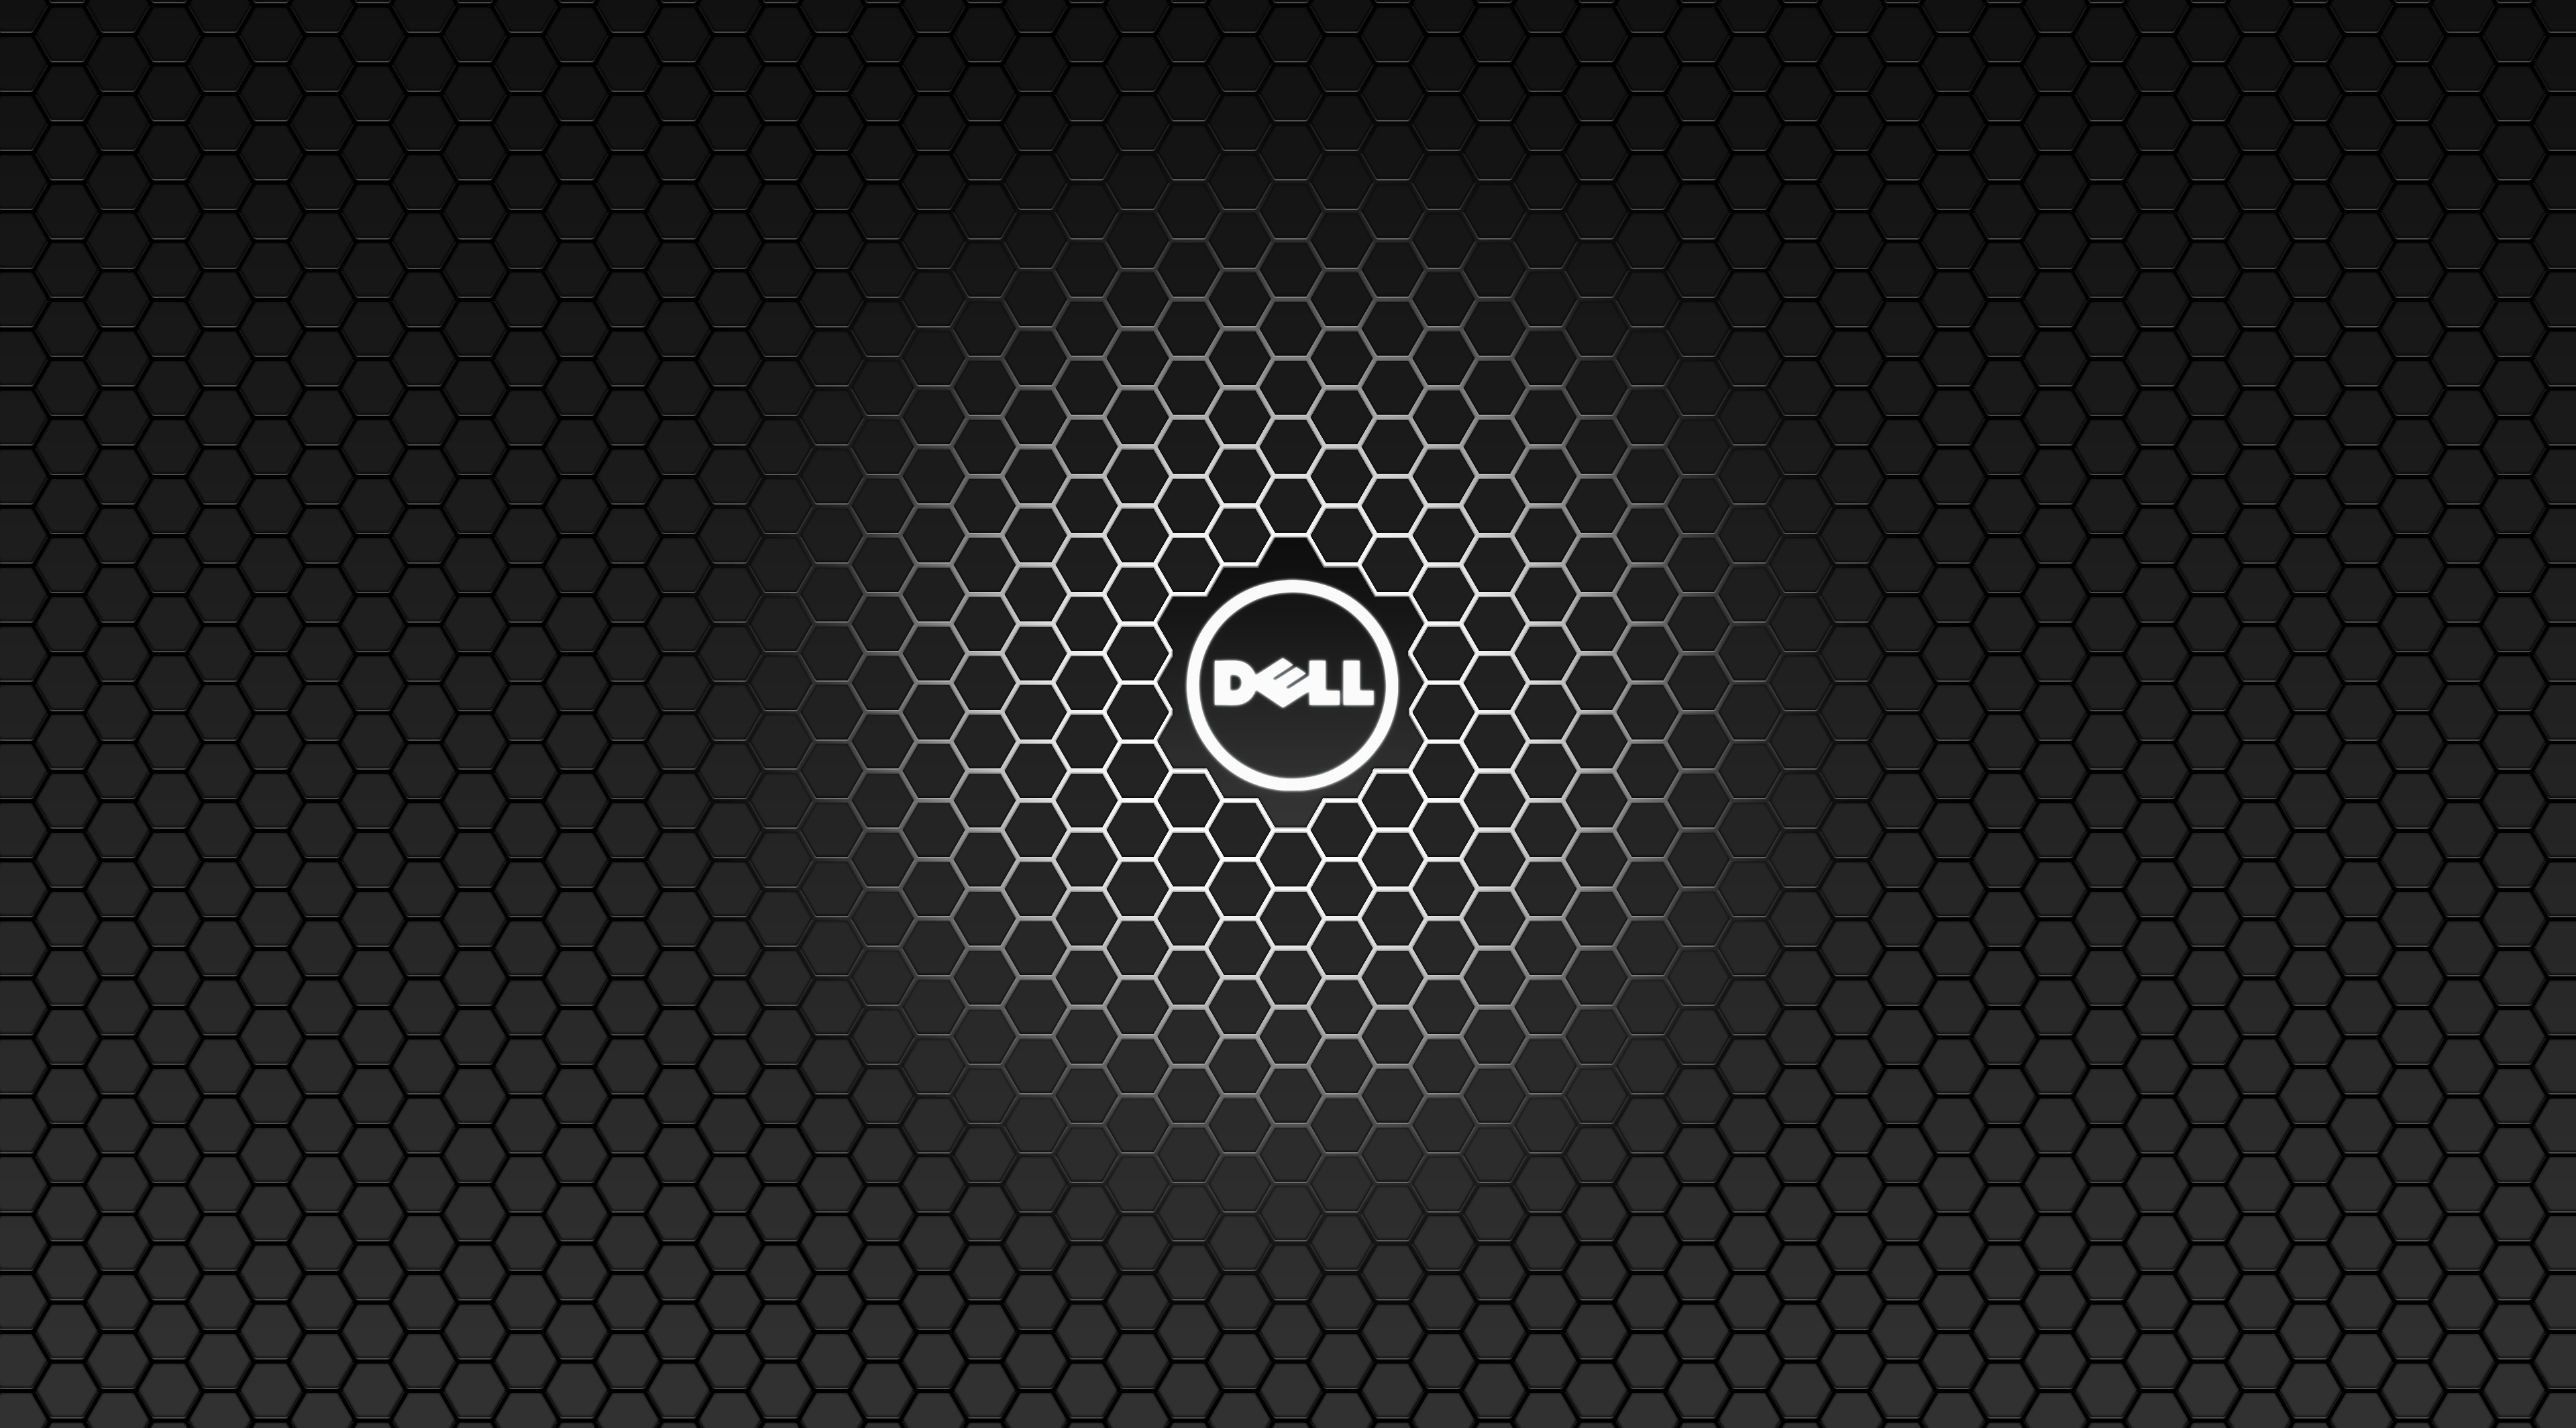 Free Dell In 2020 Desktop Wallpapers Backgrounds Dell Desktop Technology Wallpaper